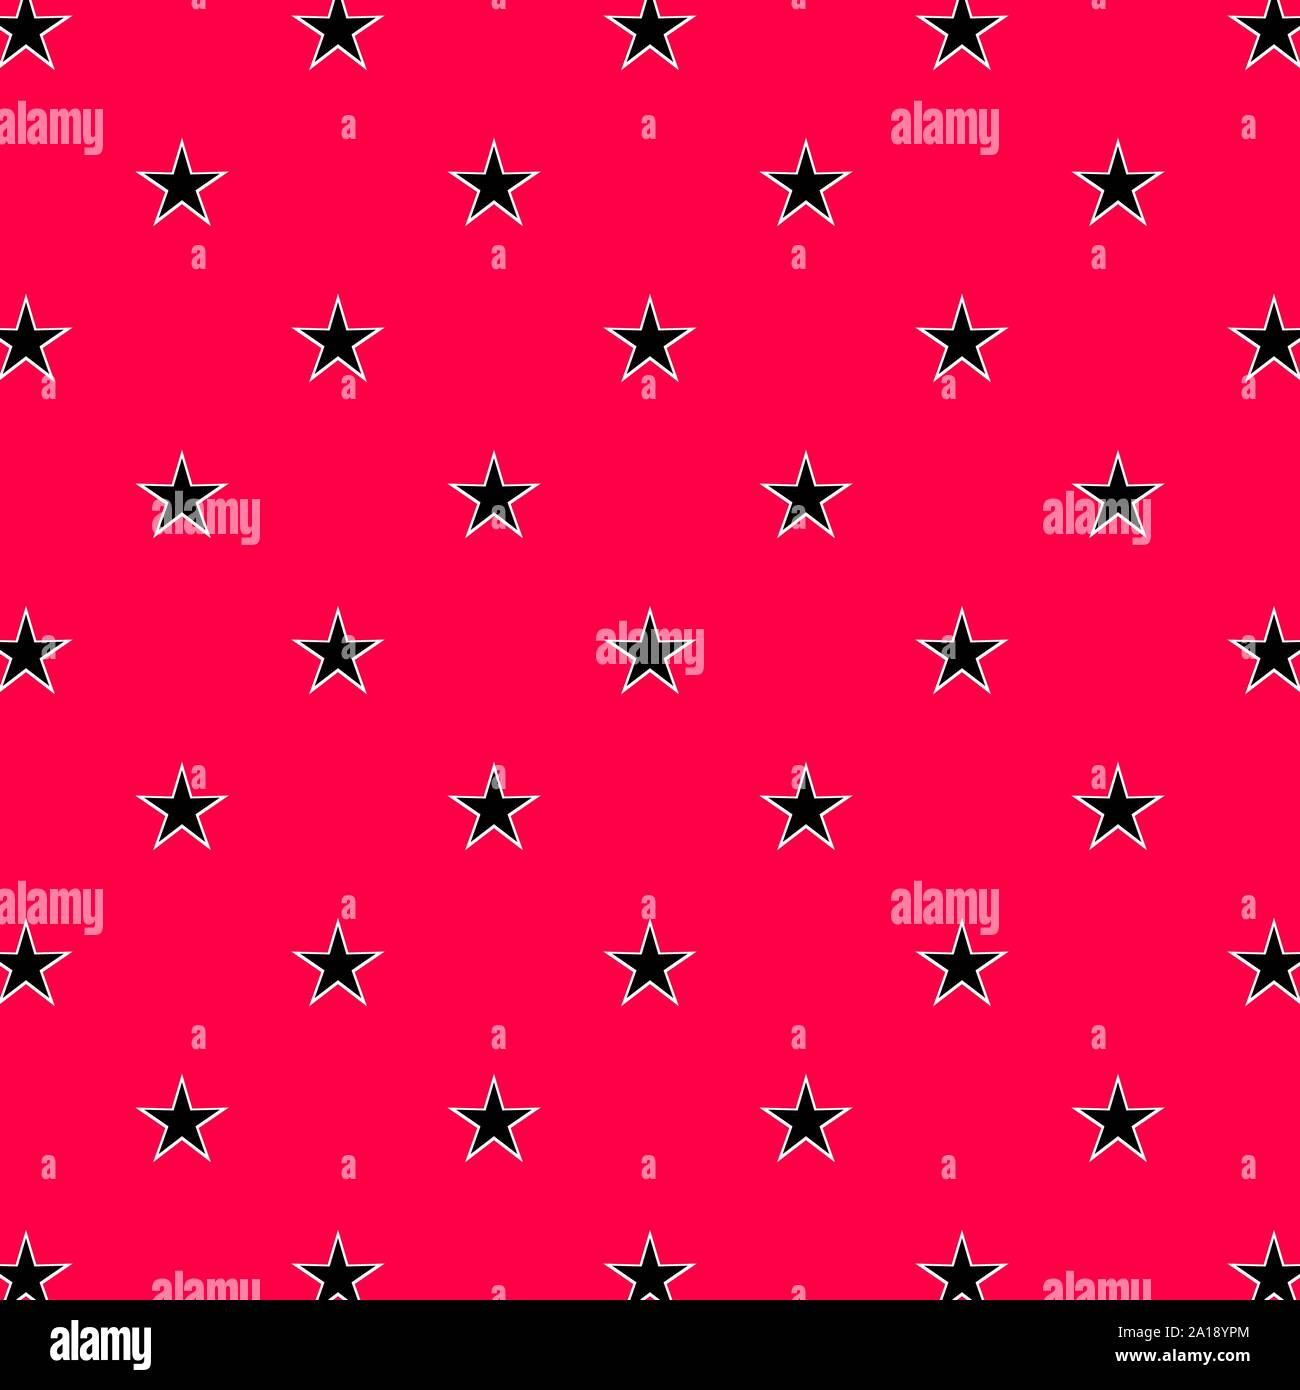 Abstract Seamless Star Pattern Wallpaper With Black And Pink